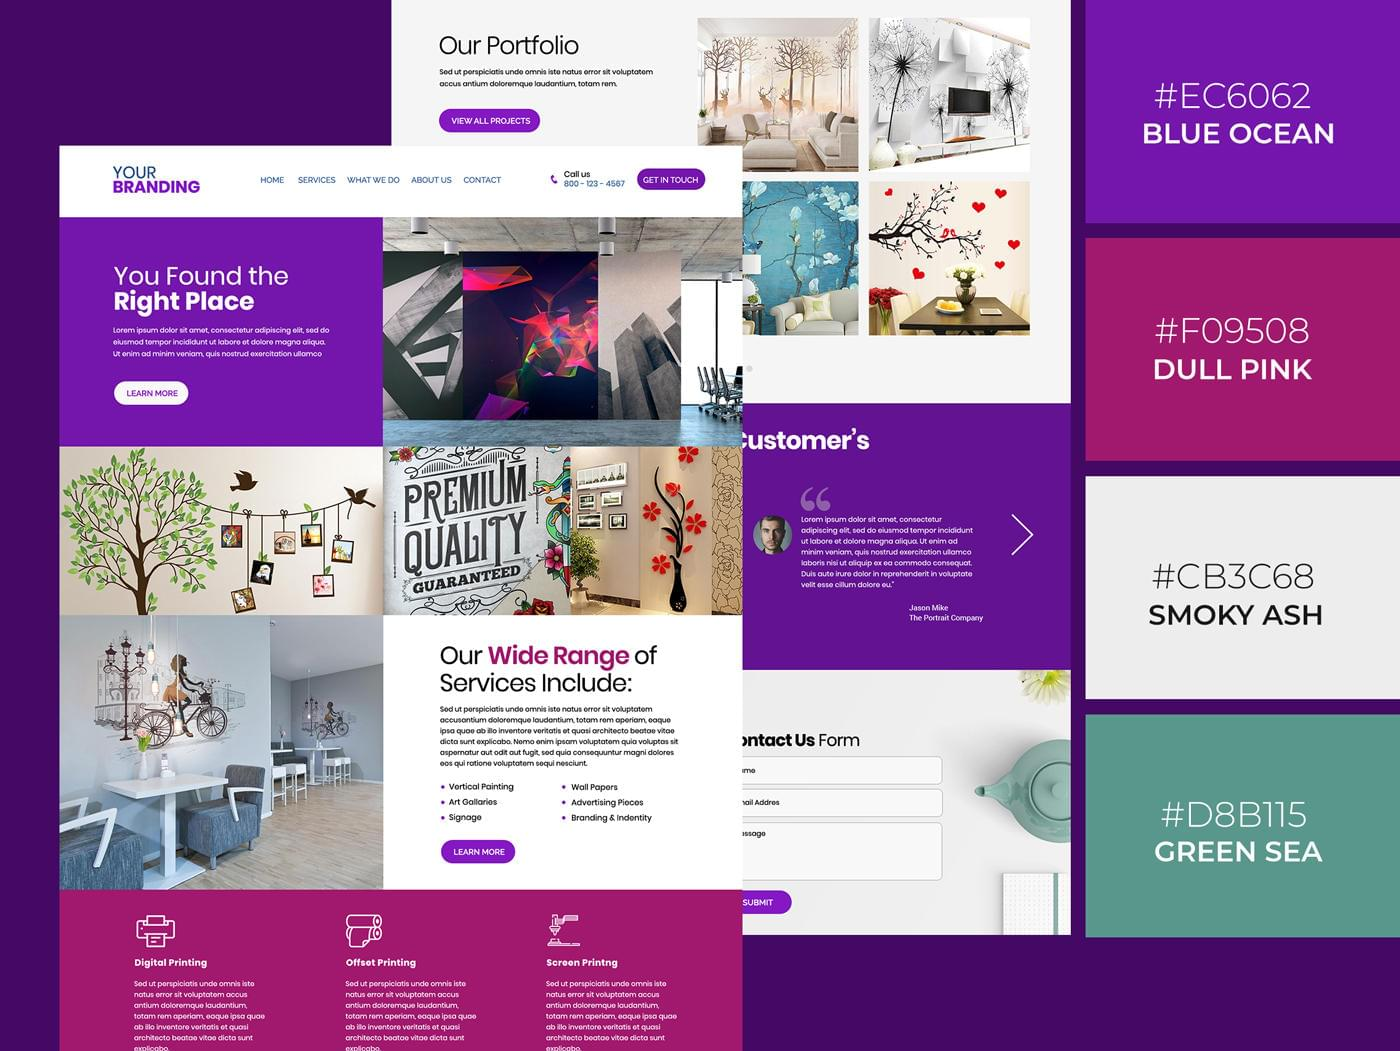 Professional Landing Page Design by MuhammadAbbas - 112562